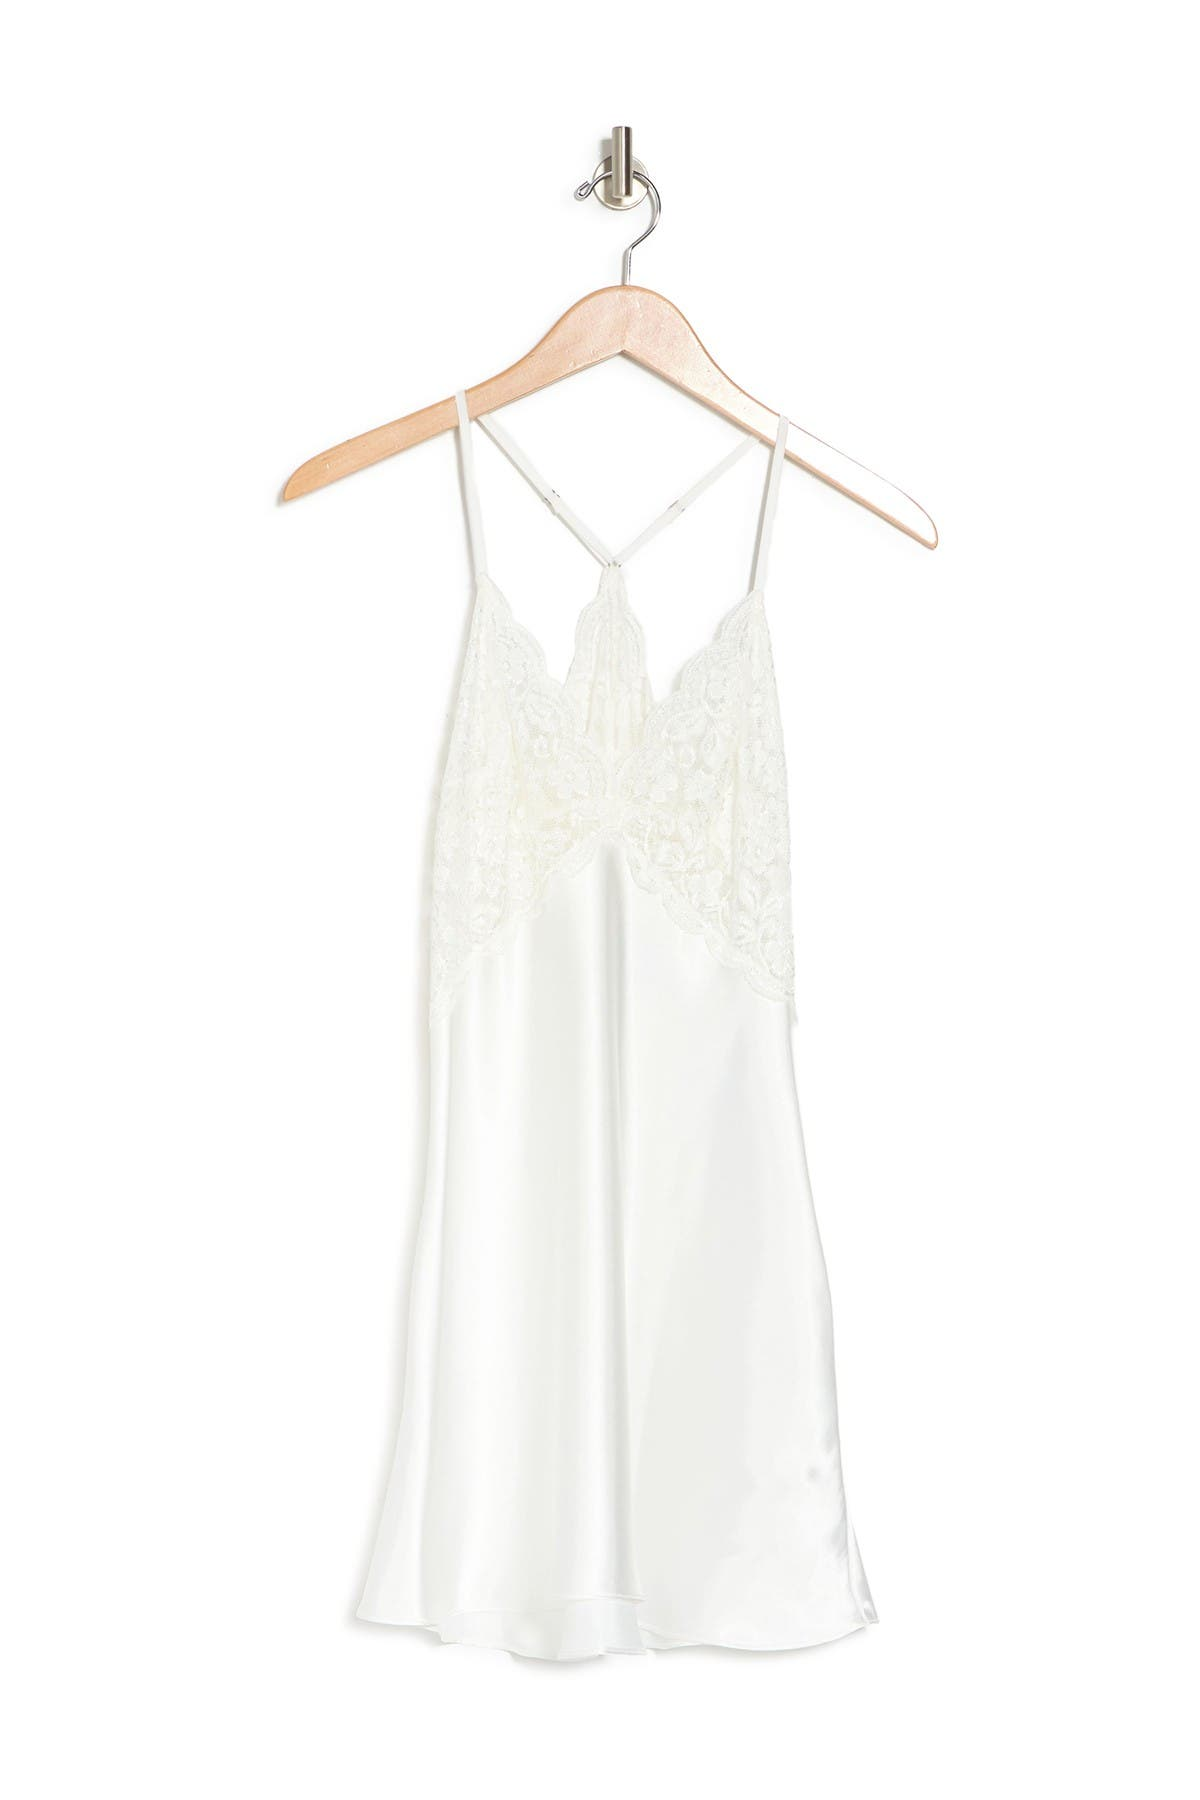 In Bloom By Jonquil Tops WORDS OF LOVE SATIN & LACE CHEMISE